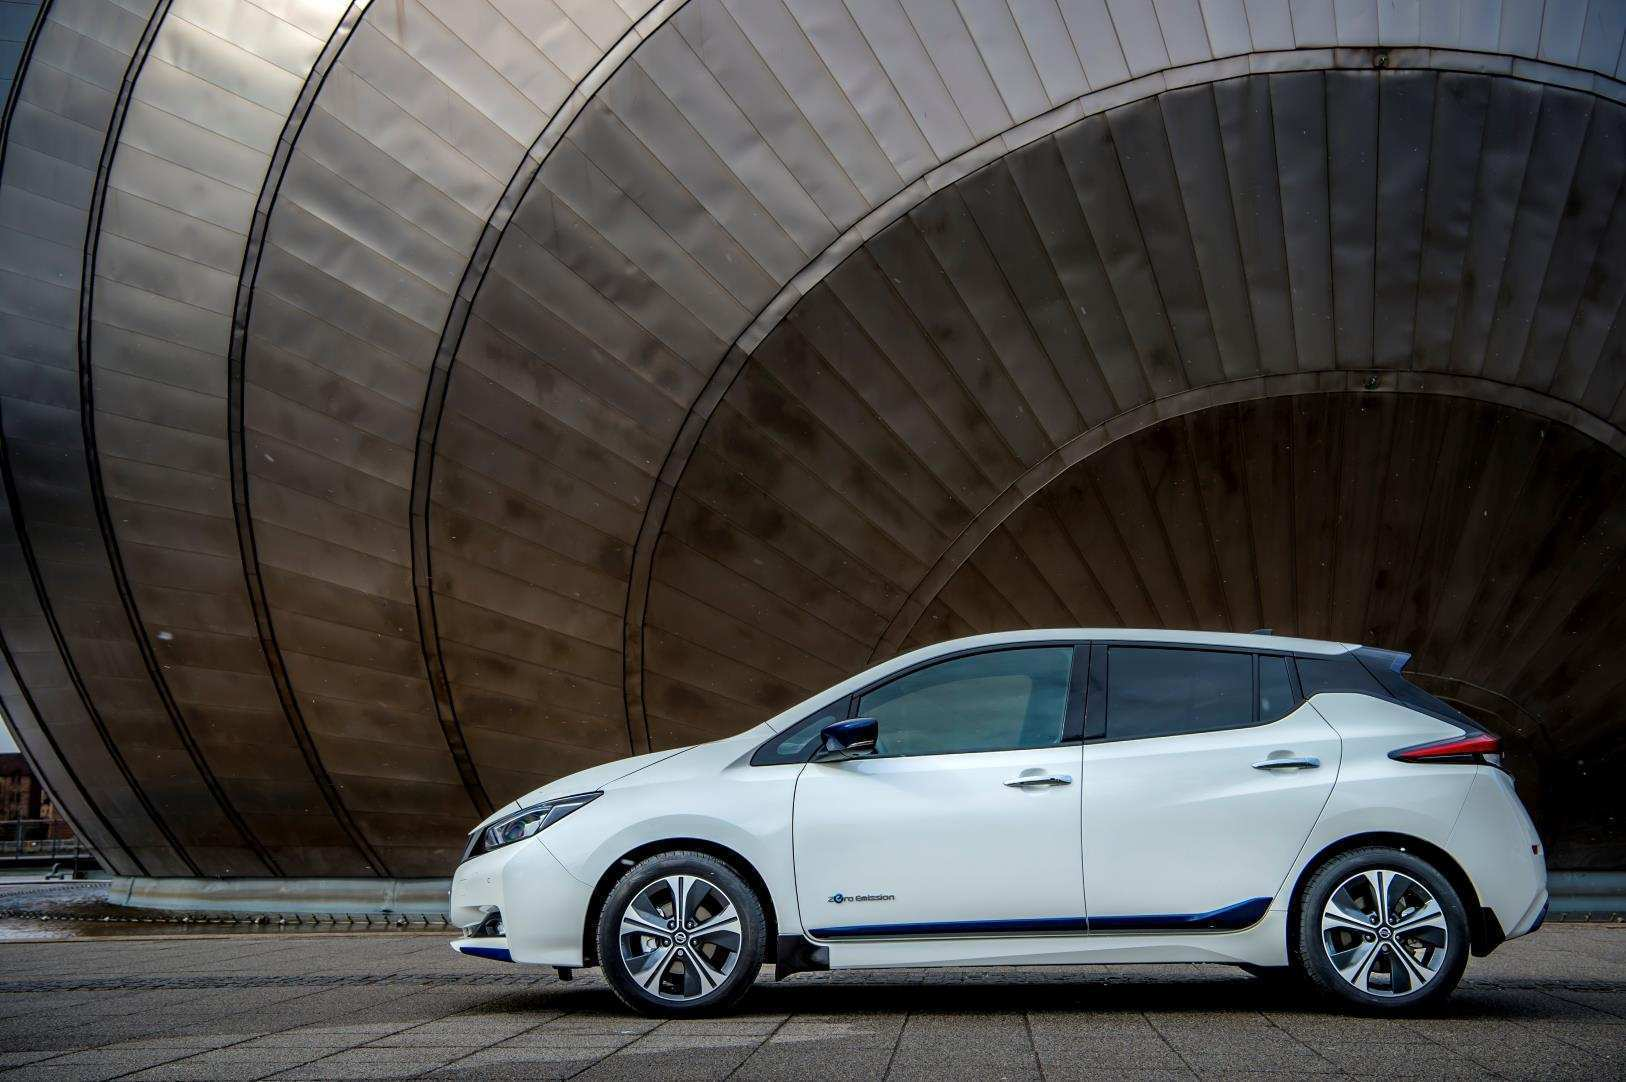 61 The 2020 Nissan Leaf Range Rumors